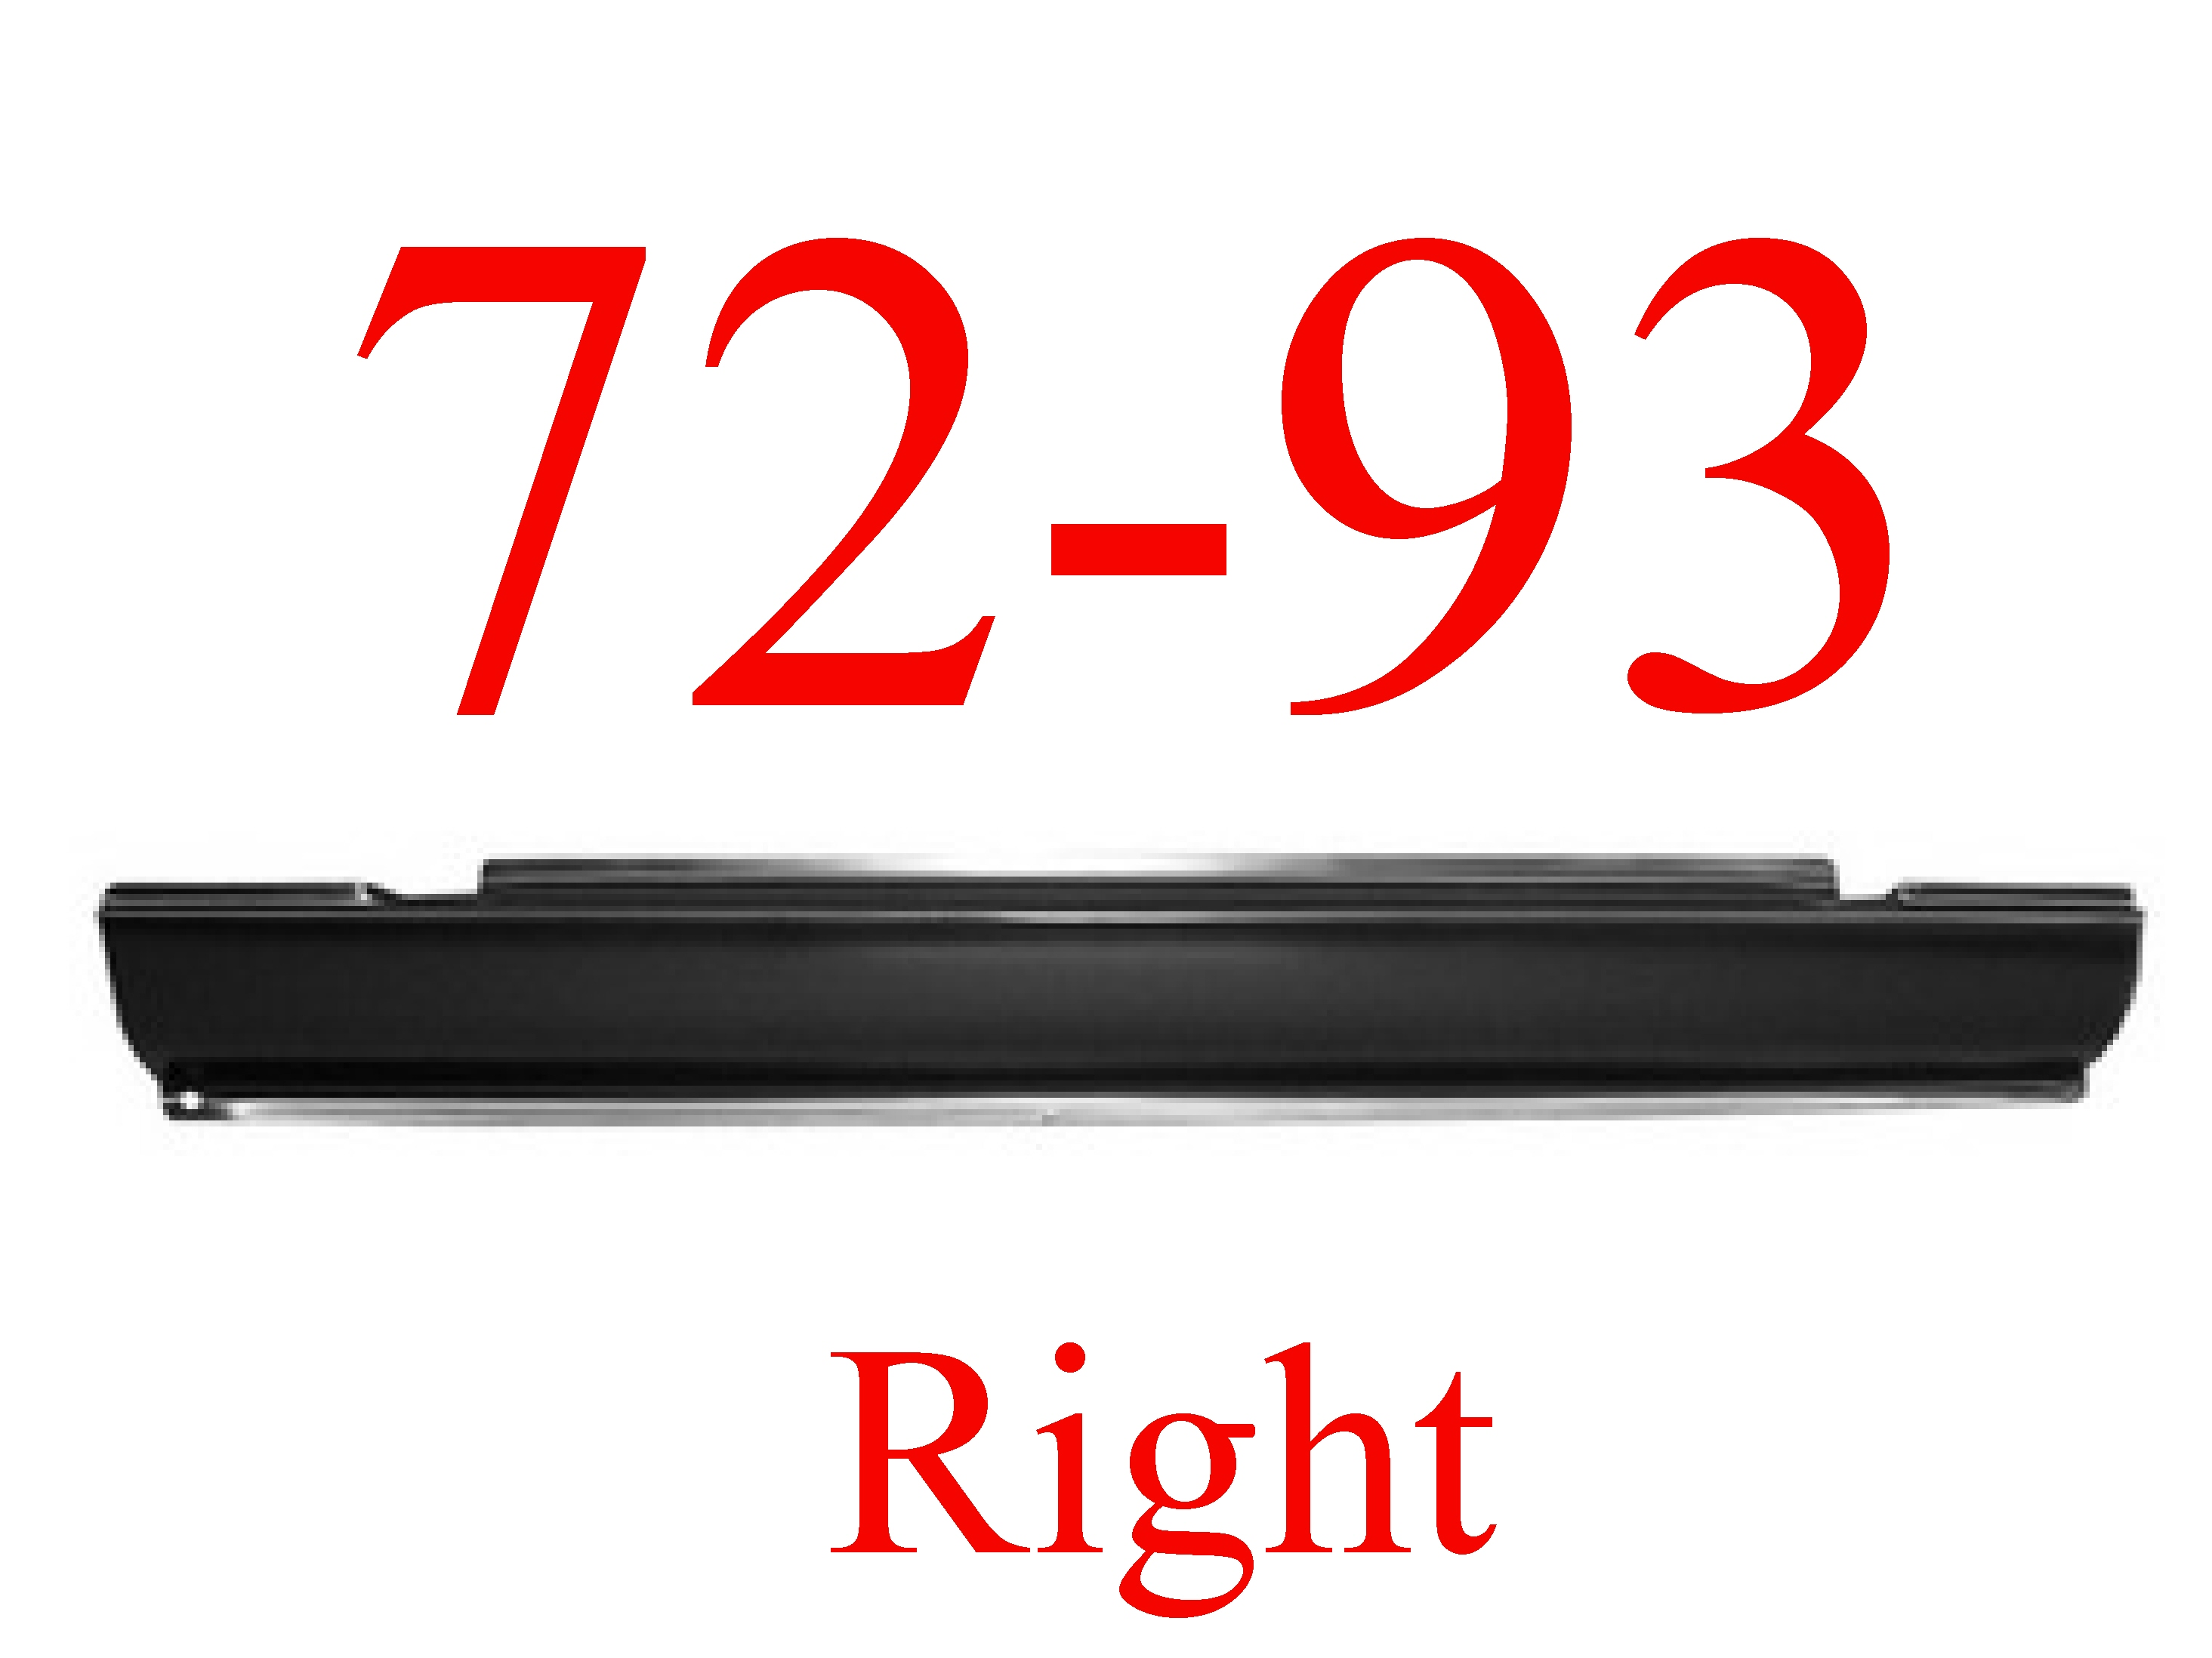 72-93 Dodge Ram RIGHT Slip-On Rocker Panel